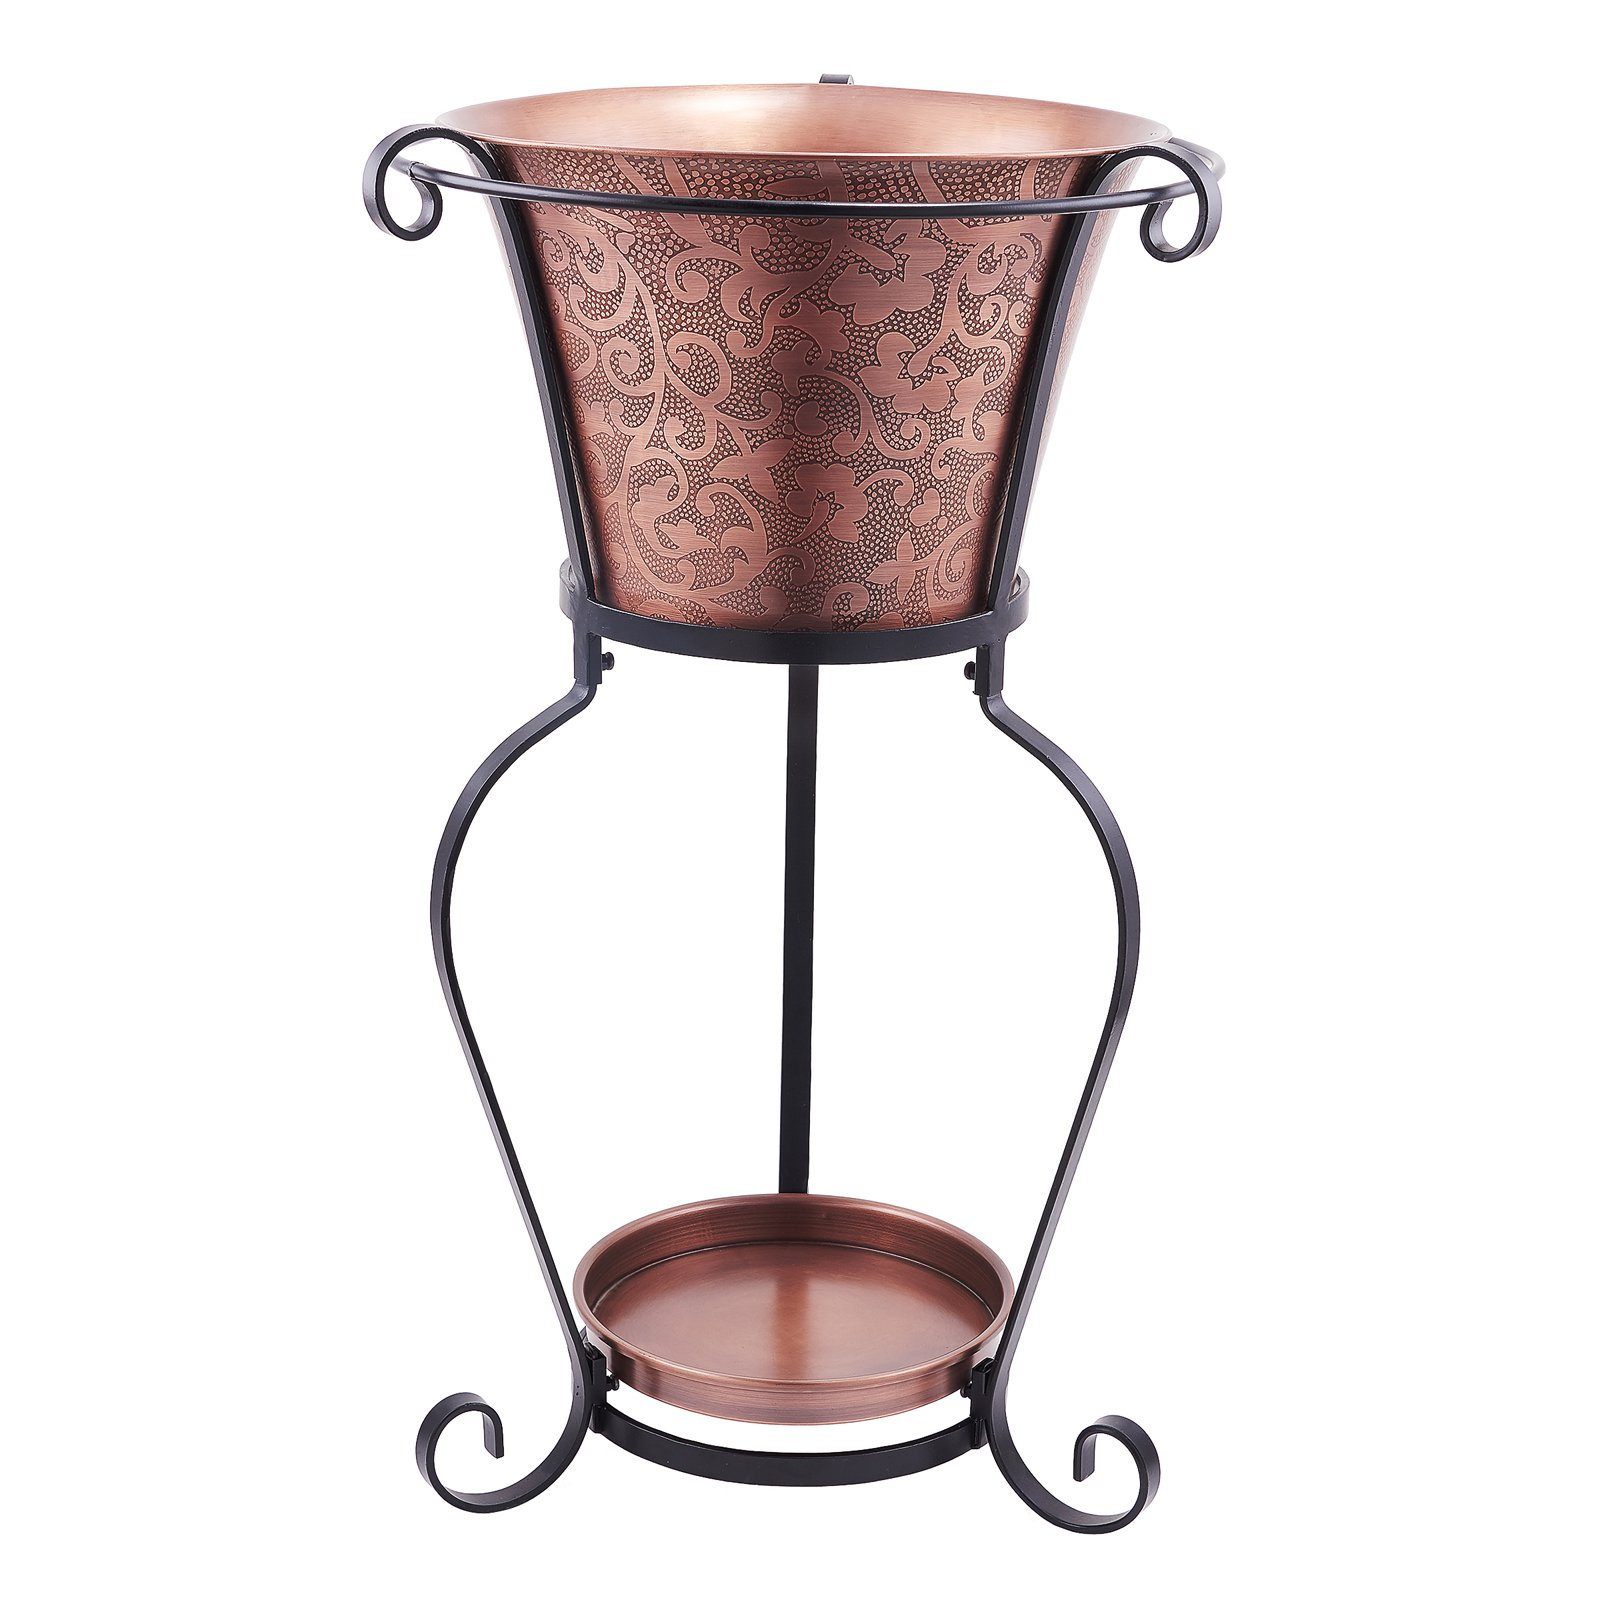 5 Gallon Solid Copper Etched Beverage Tub w/Stand,